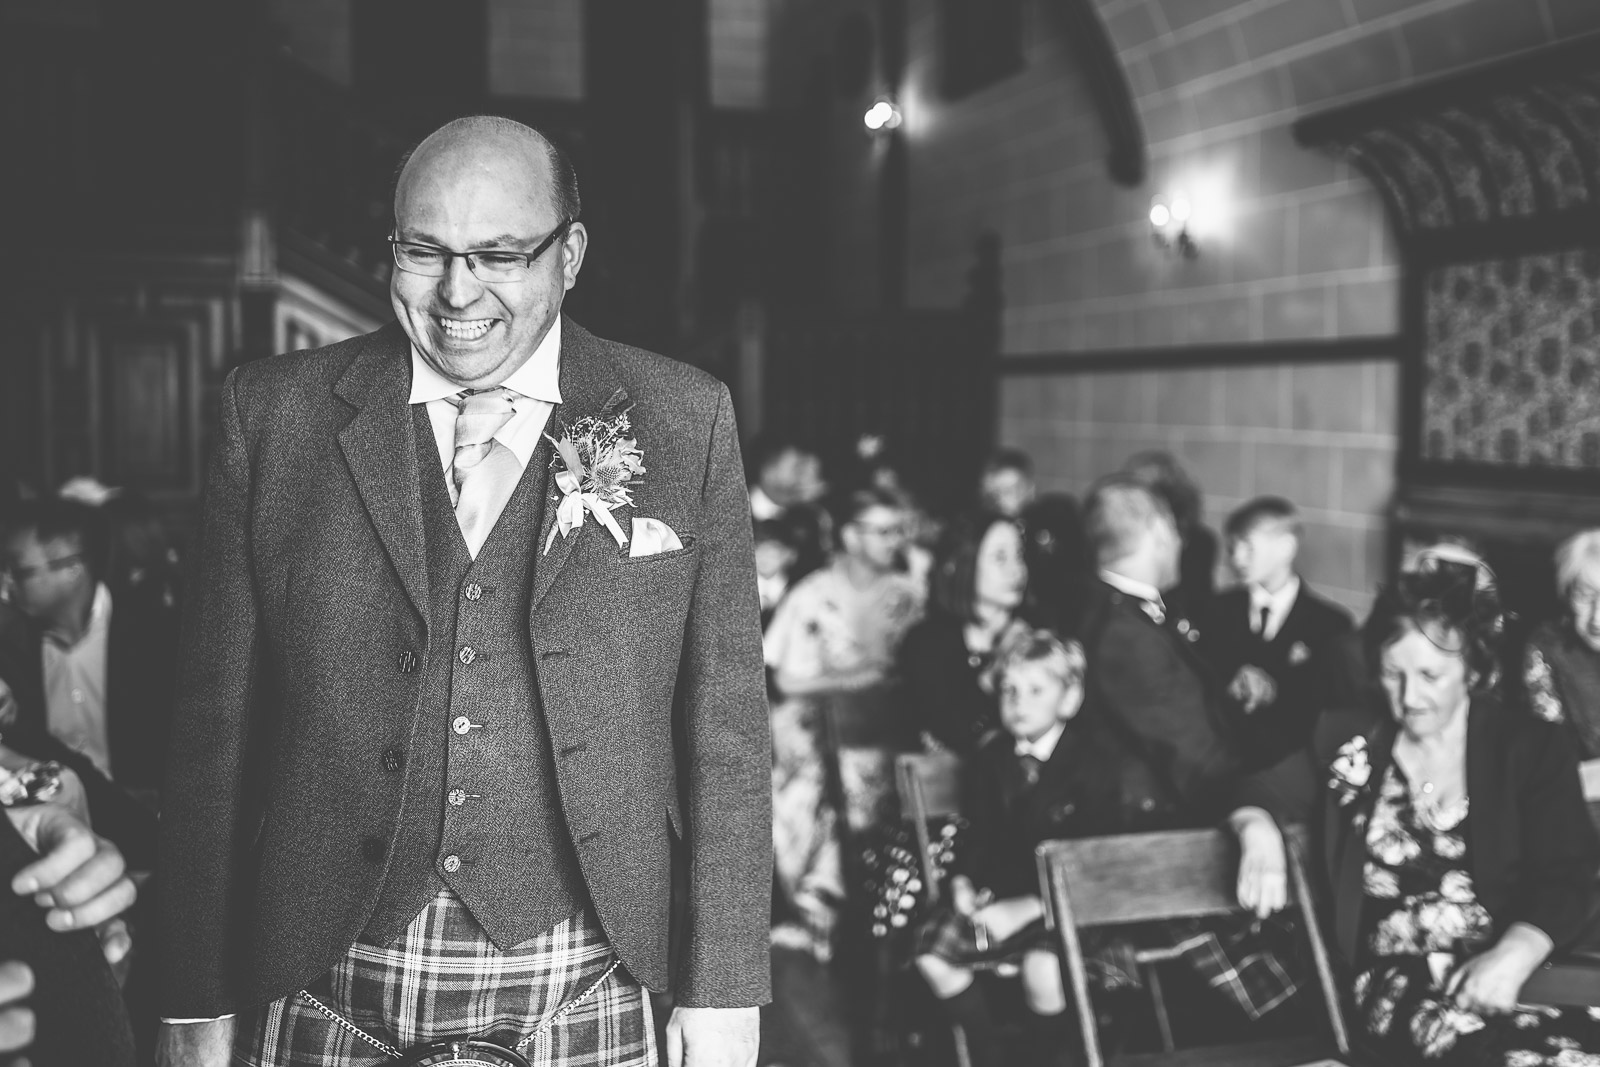 dalhousie_castle_wedding_edinburgh_dearlyphotography (76 of 371).jpg